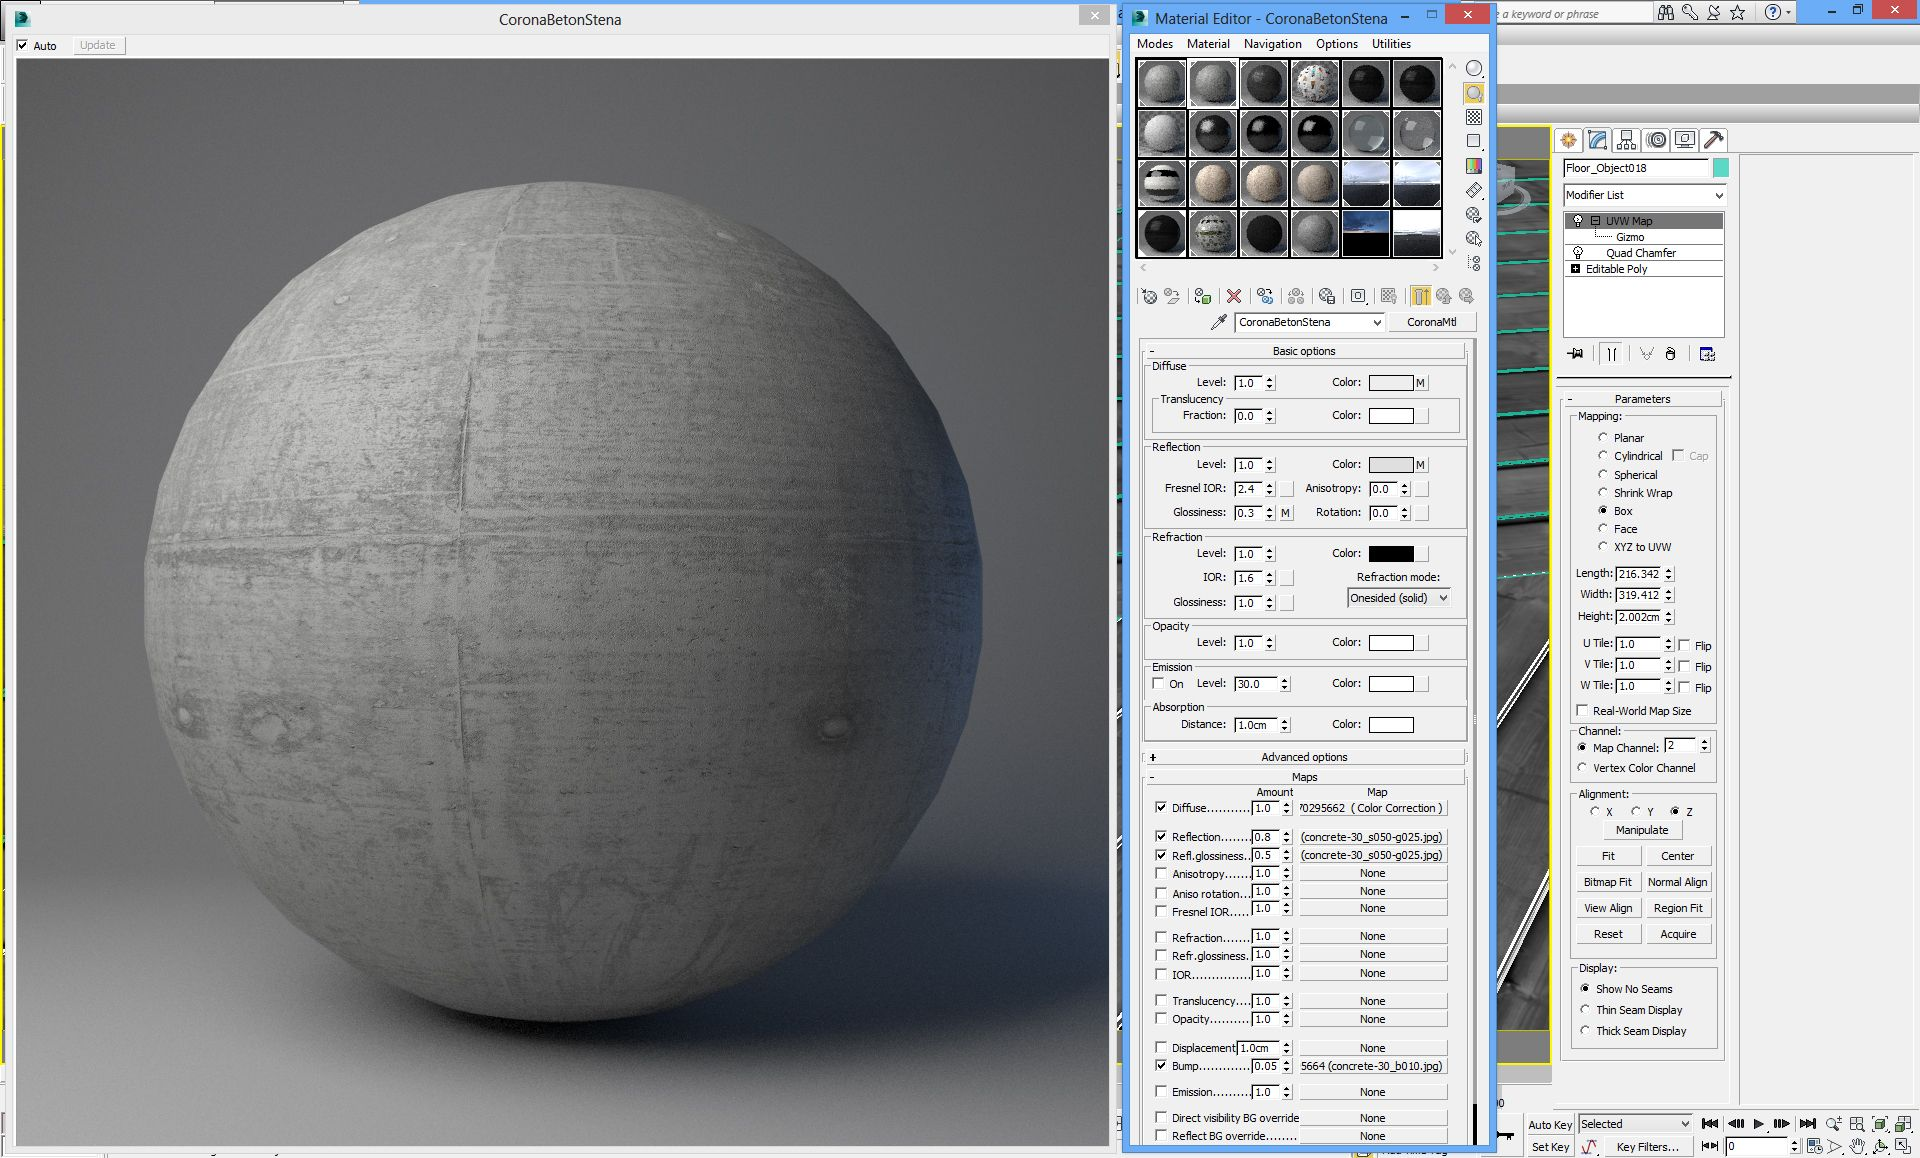 Corona shader concrete with high fresnel ior and arroway textures corona shader setup - Materiale specchio 3ds max ...